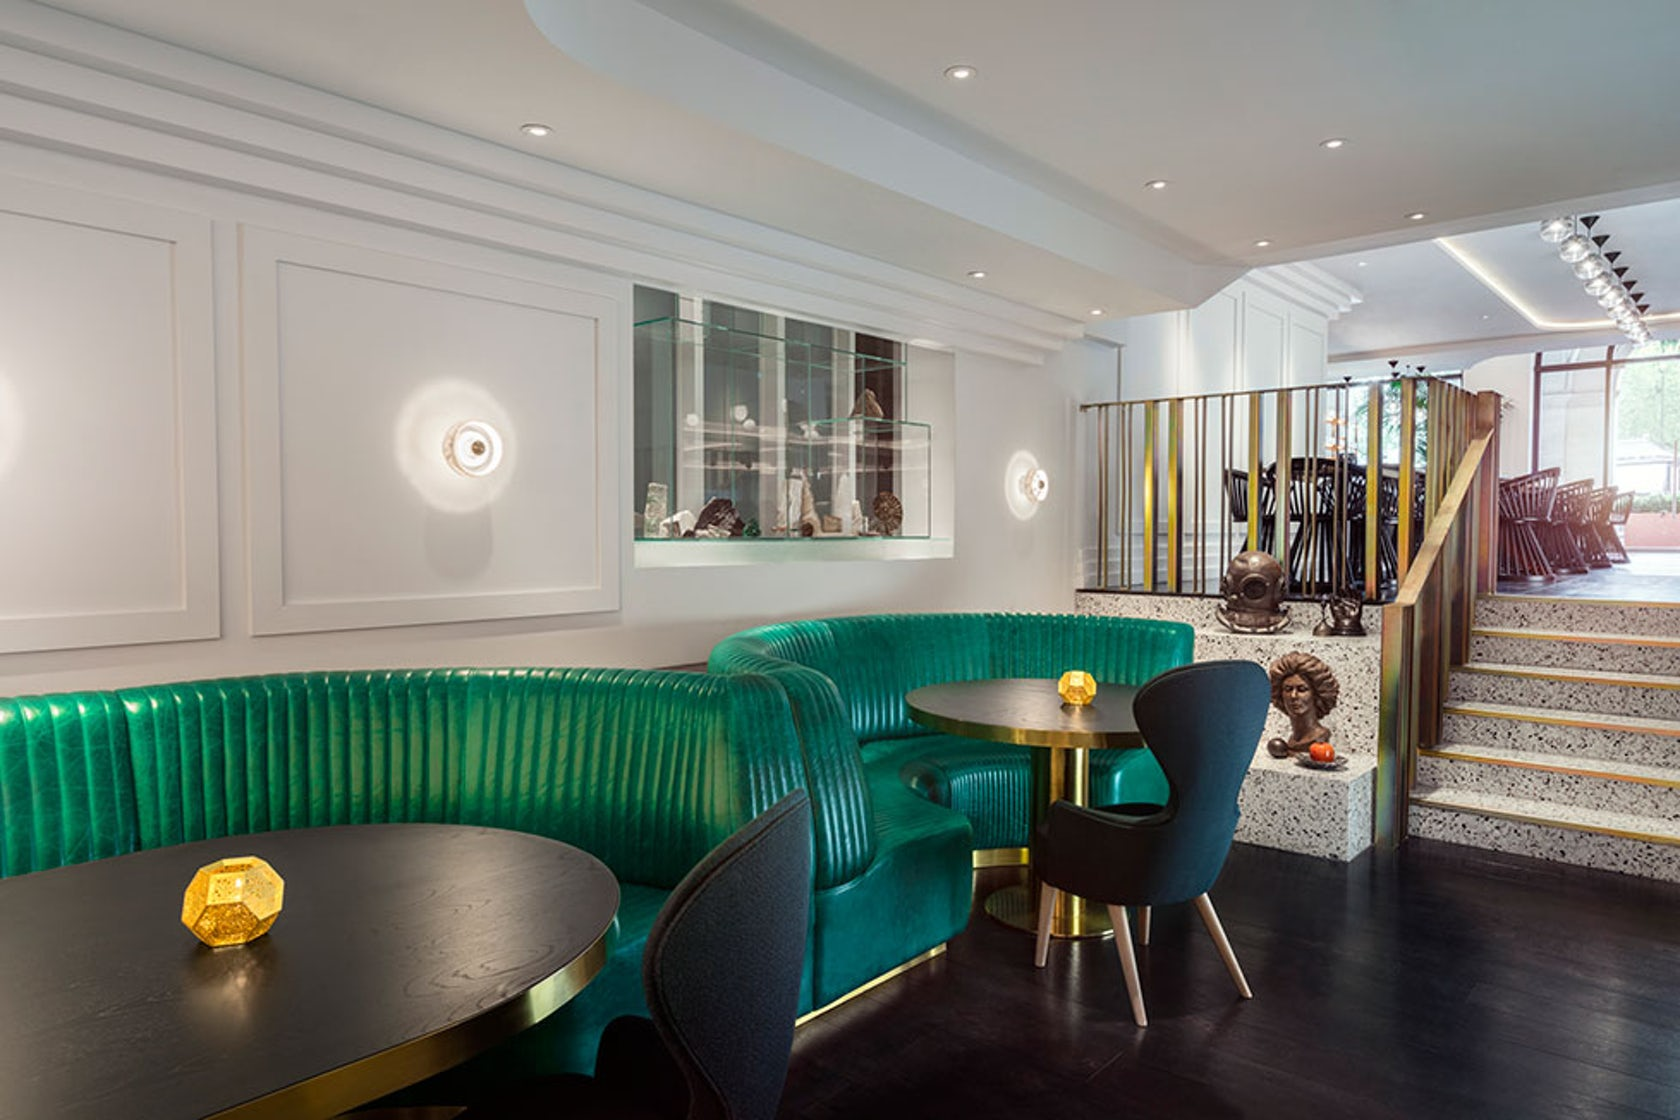 Meet The Restaurant to Eat in London with Best Lighting Designs 1 lighting design Meet The Restaurant to Eat in London with Best Lighting Designs Meet The Restaurant to Eat in London with Best Lighting Designs 4